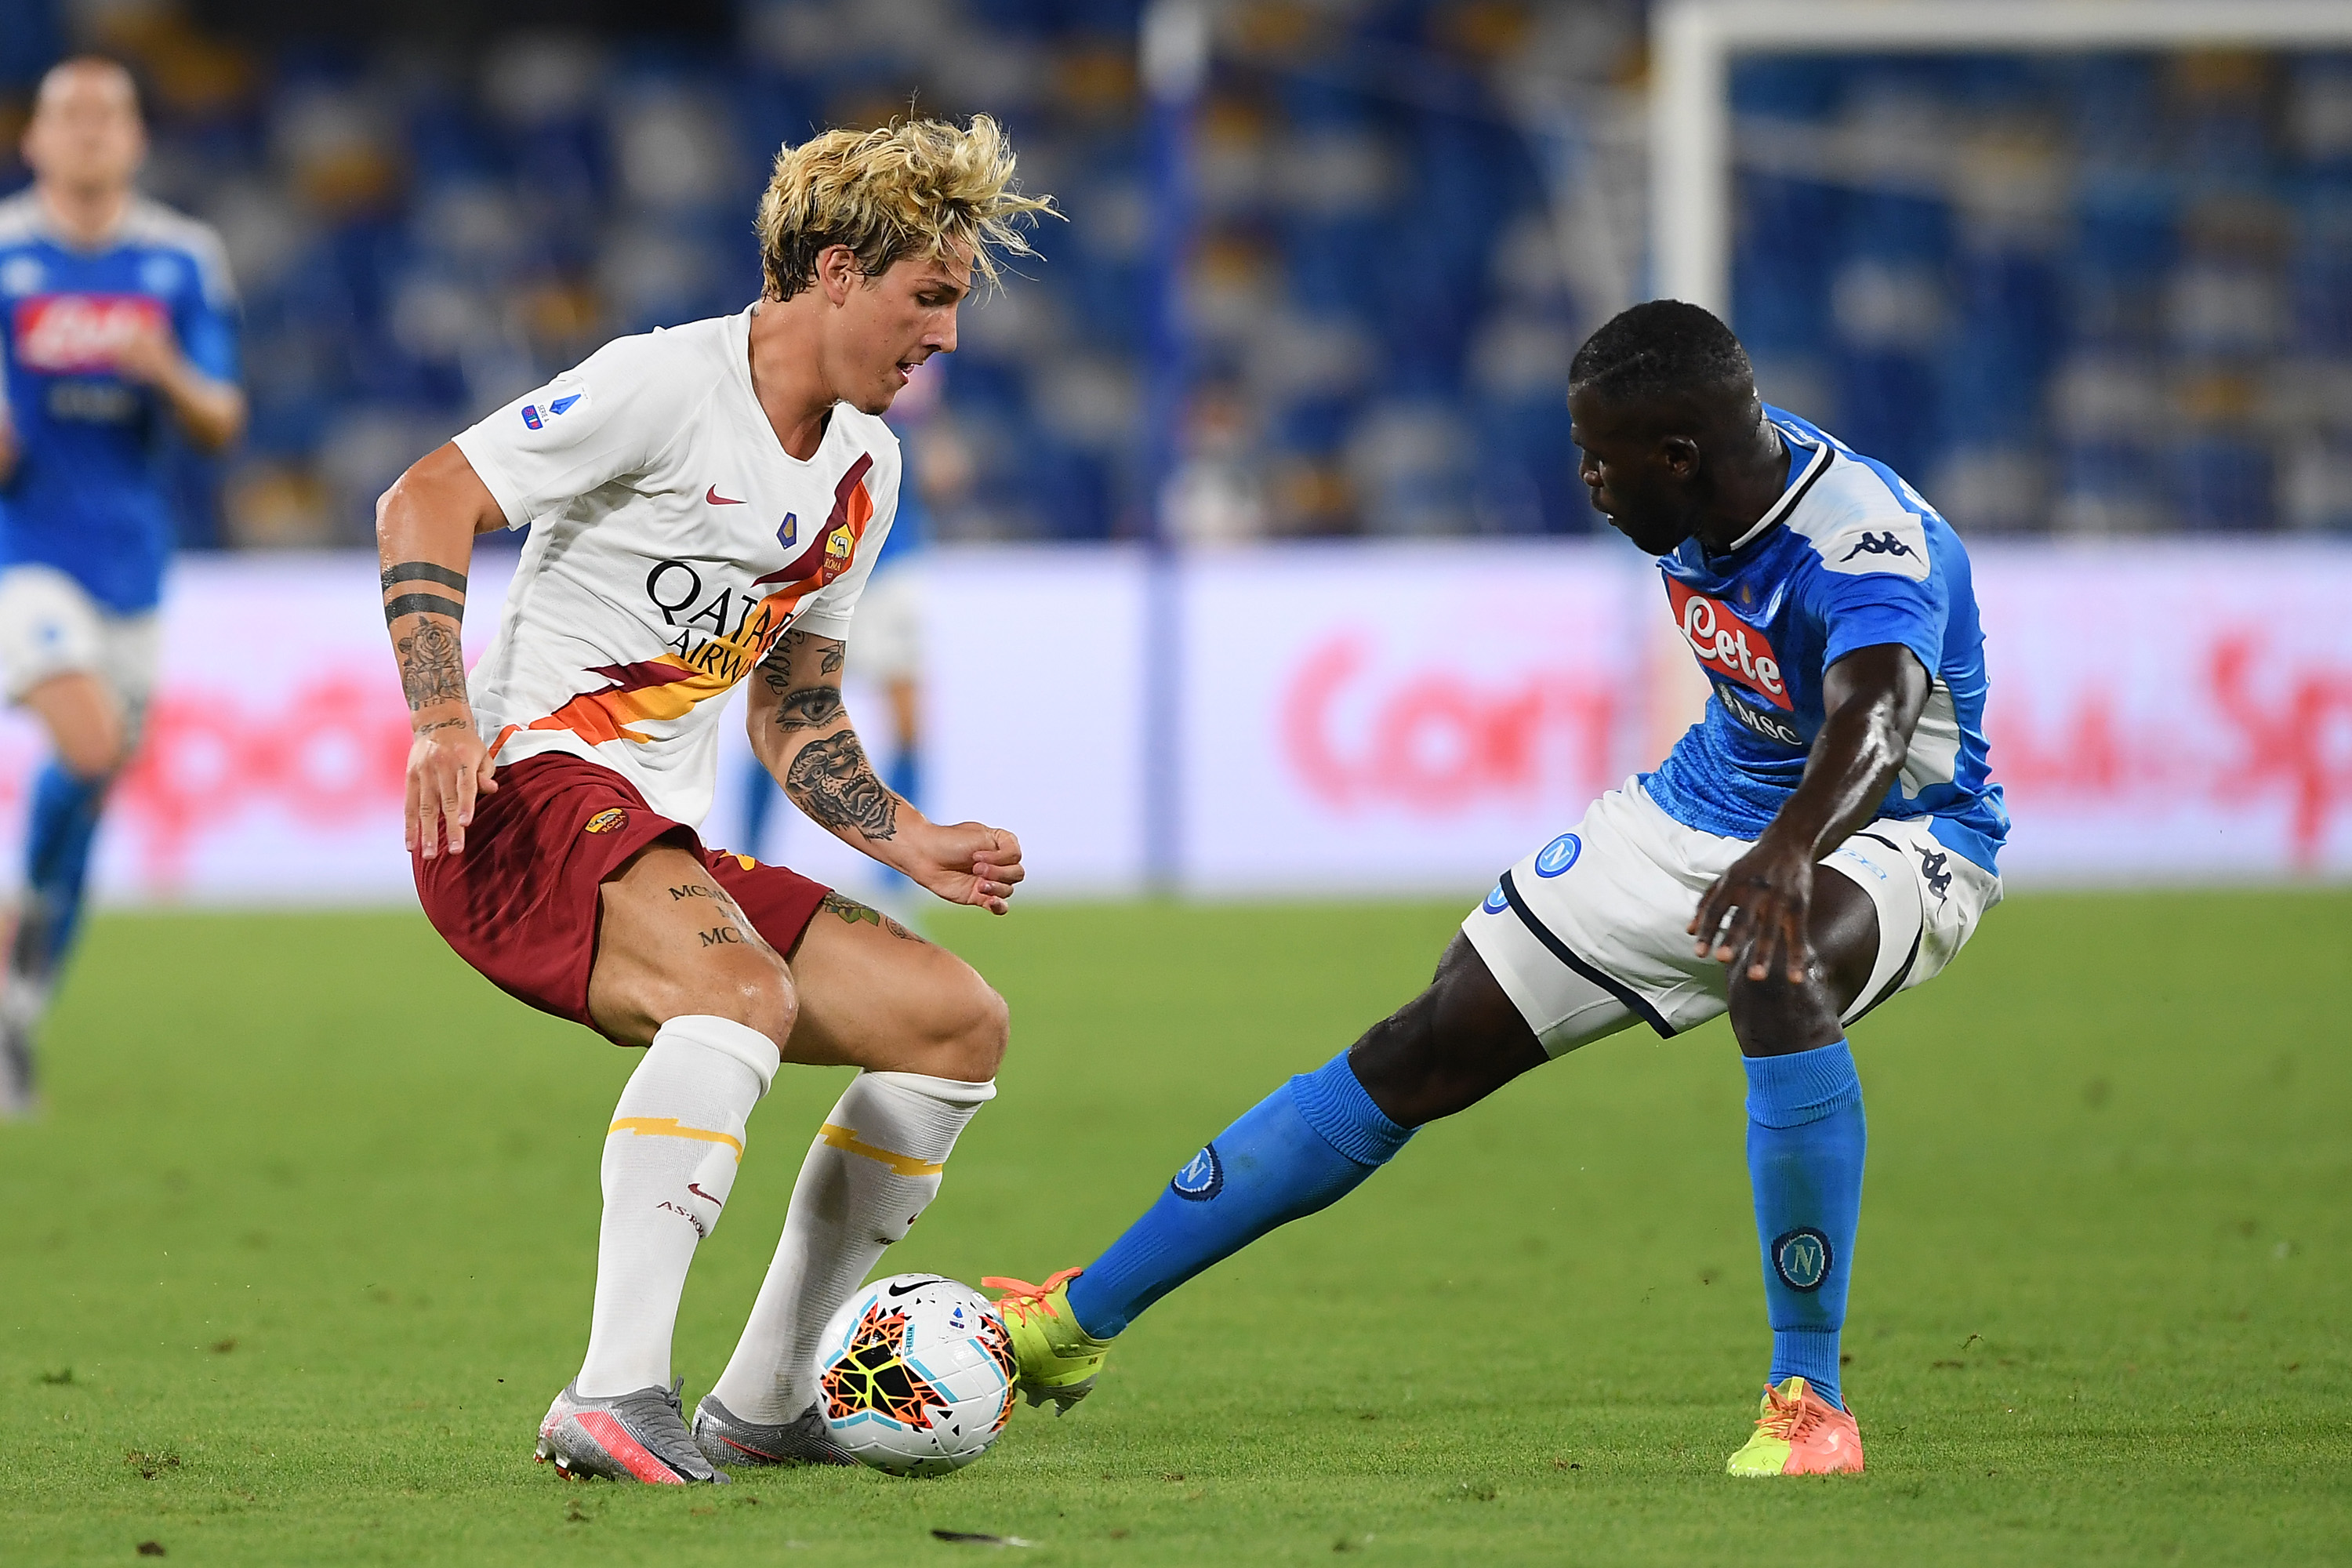 Koulibaly agrees personal terms with Manchester City (Koulibaly is seen in the photo)